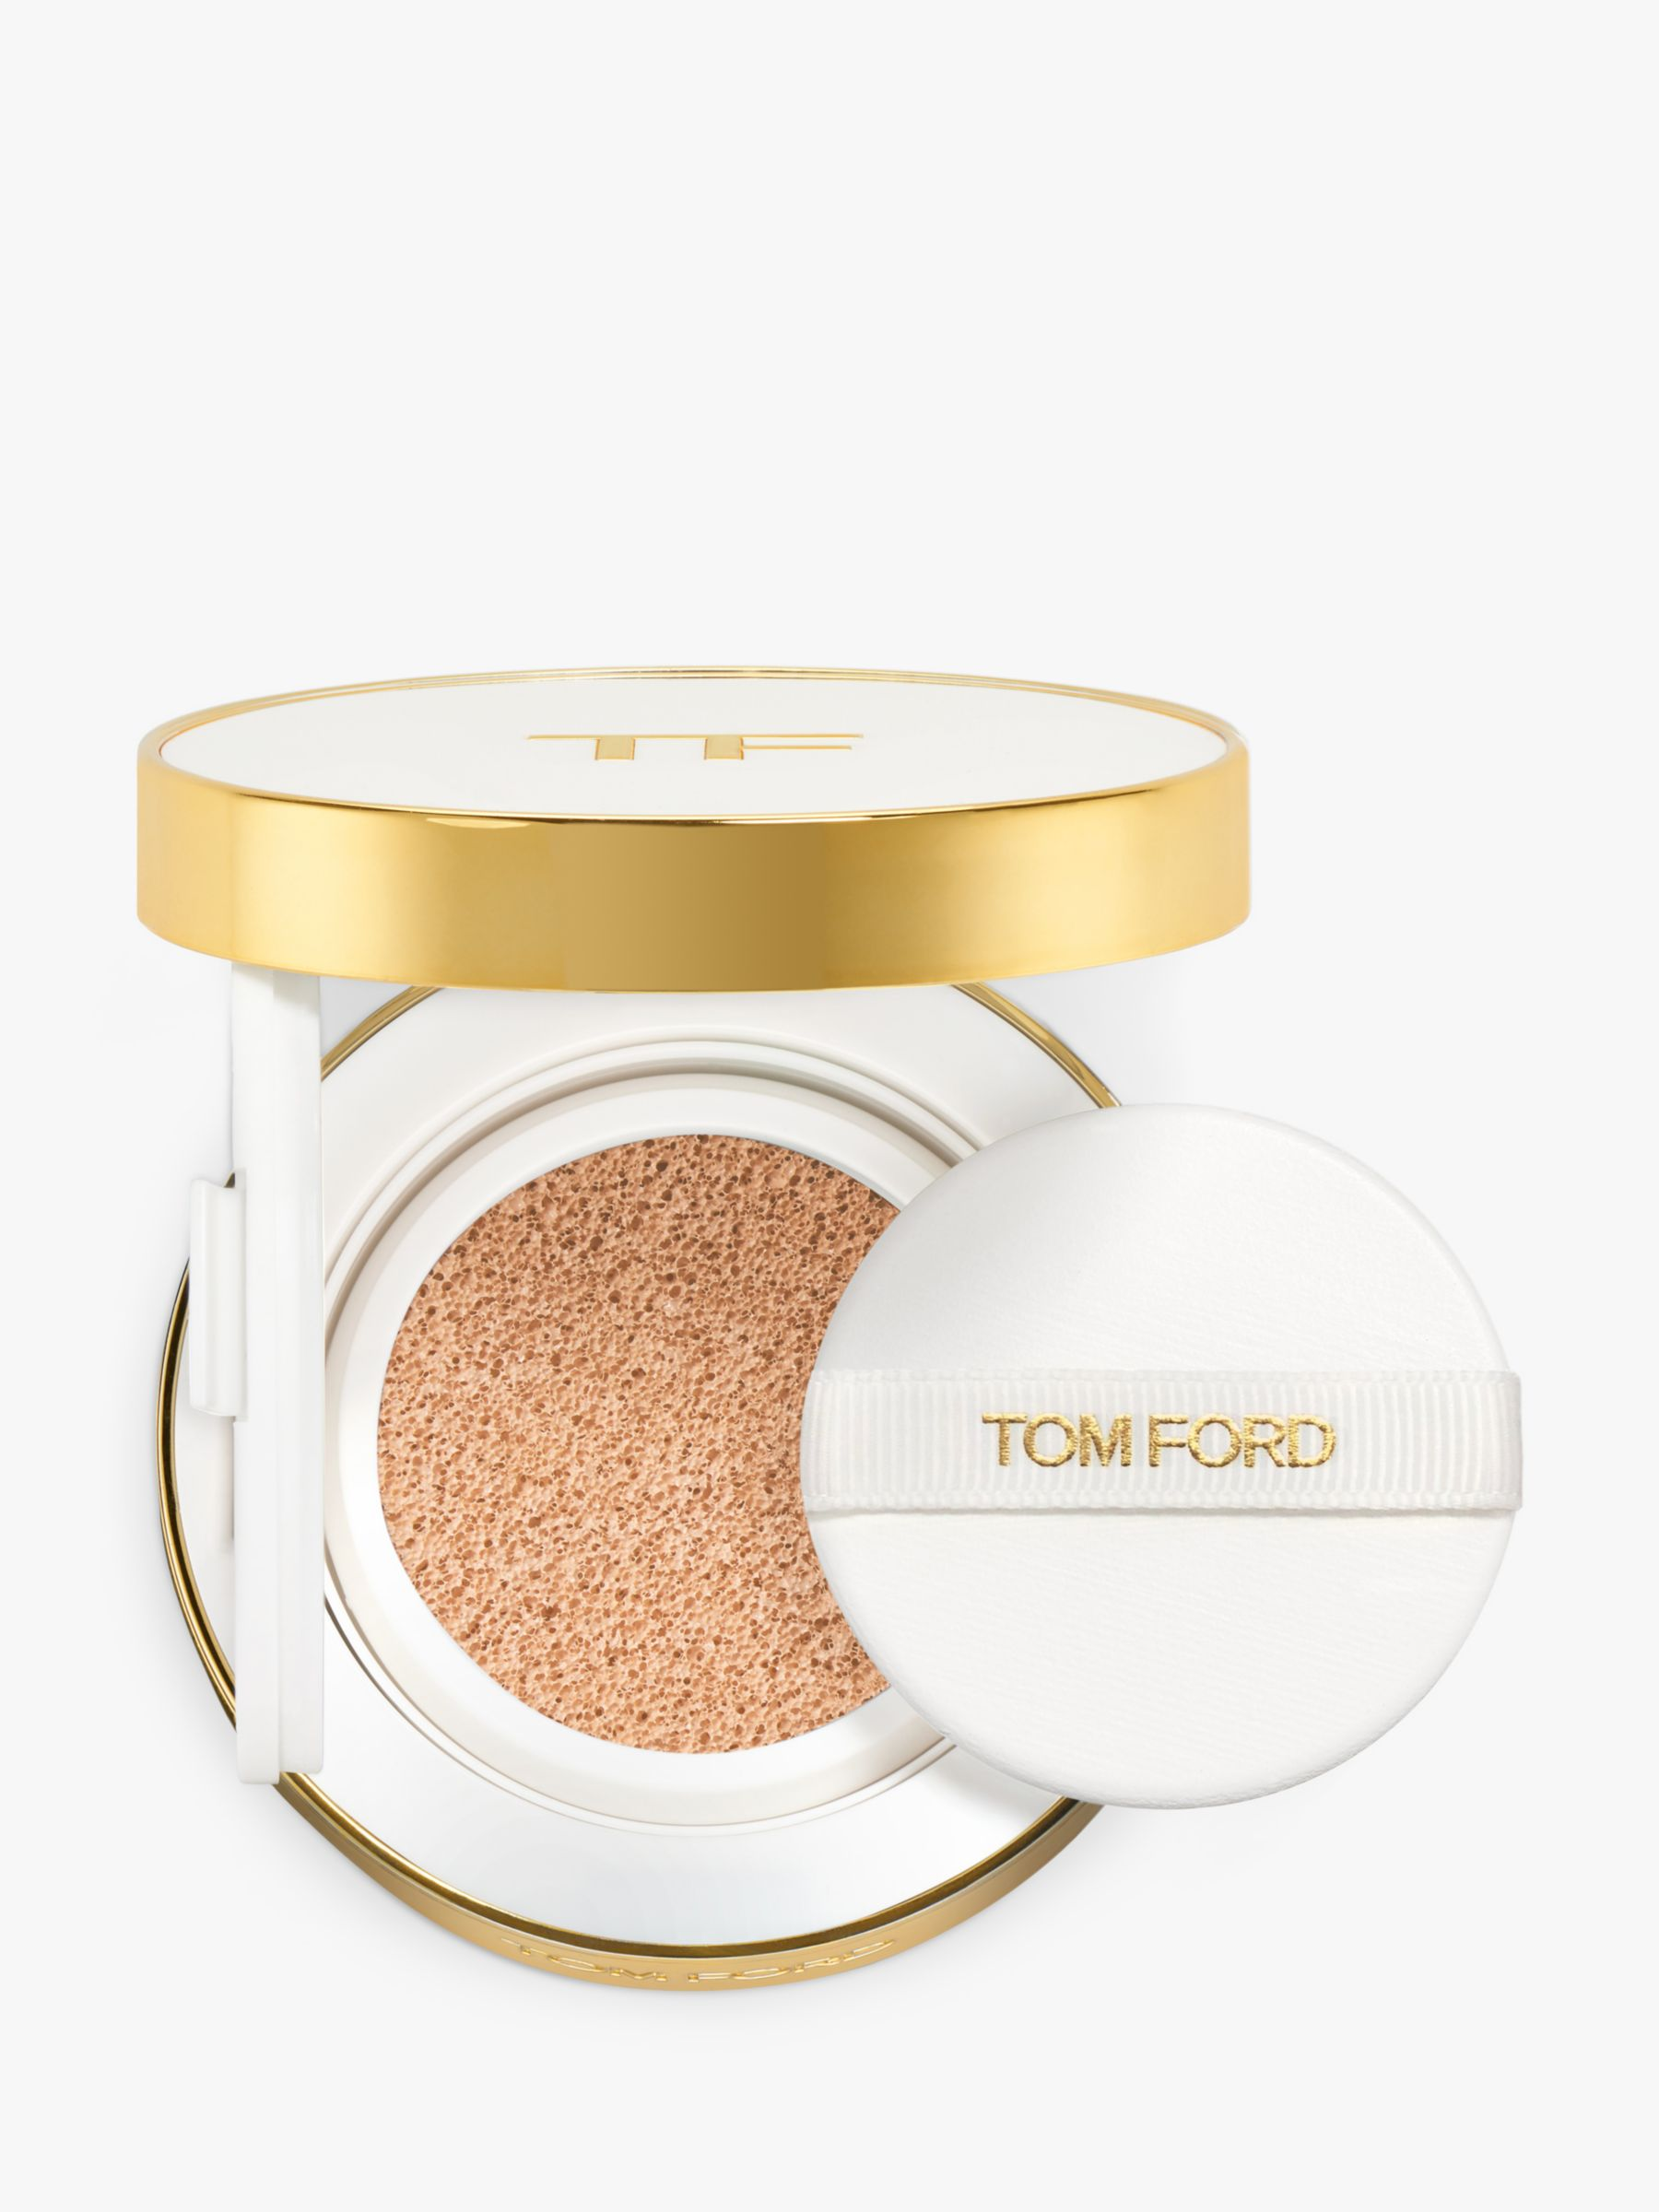 Tom Ford Glow Tone Up Foundation Spf 40 Hydrating Cushion Compact Foundation At John Lewis Partners